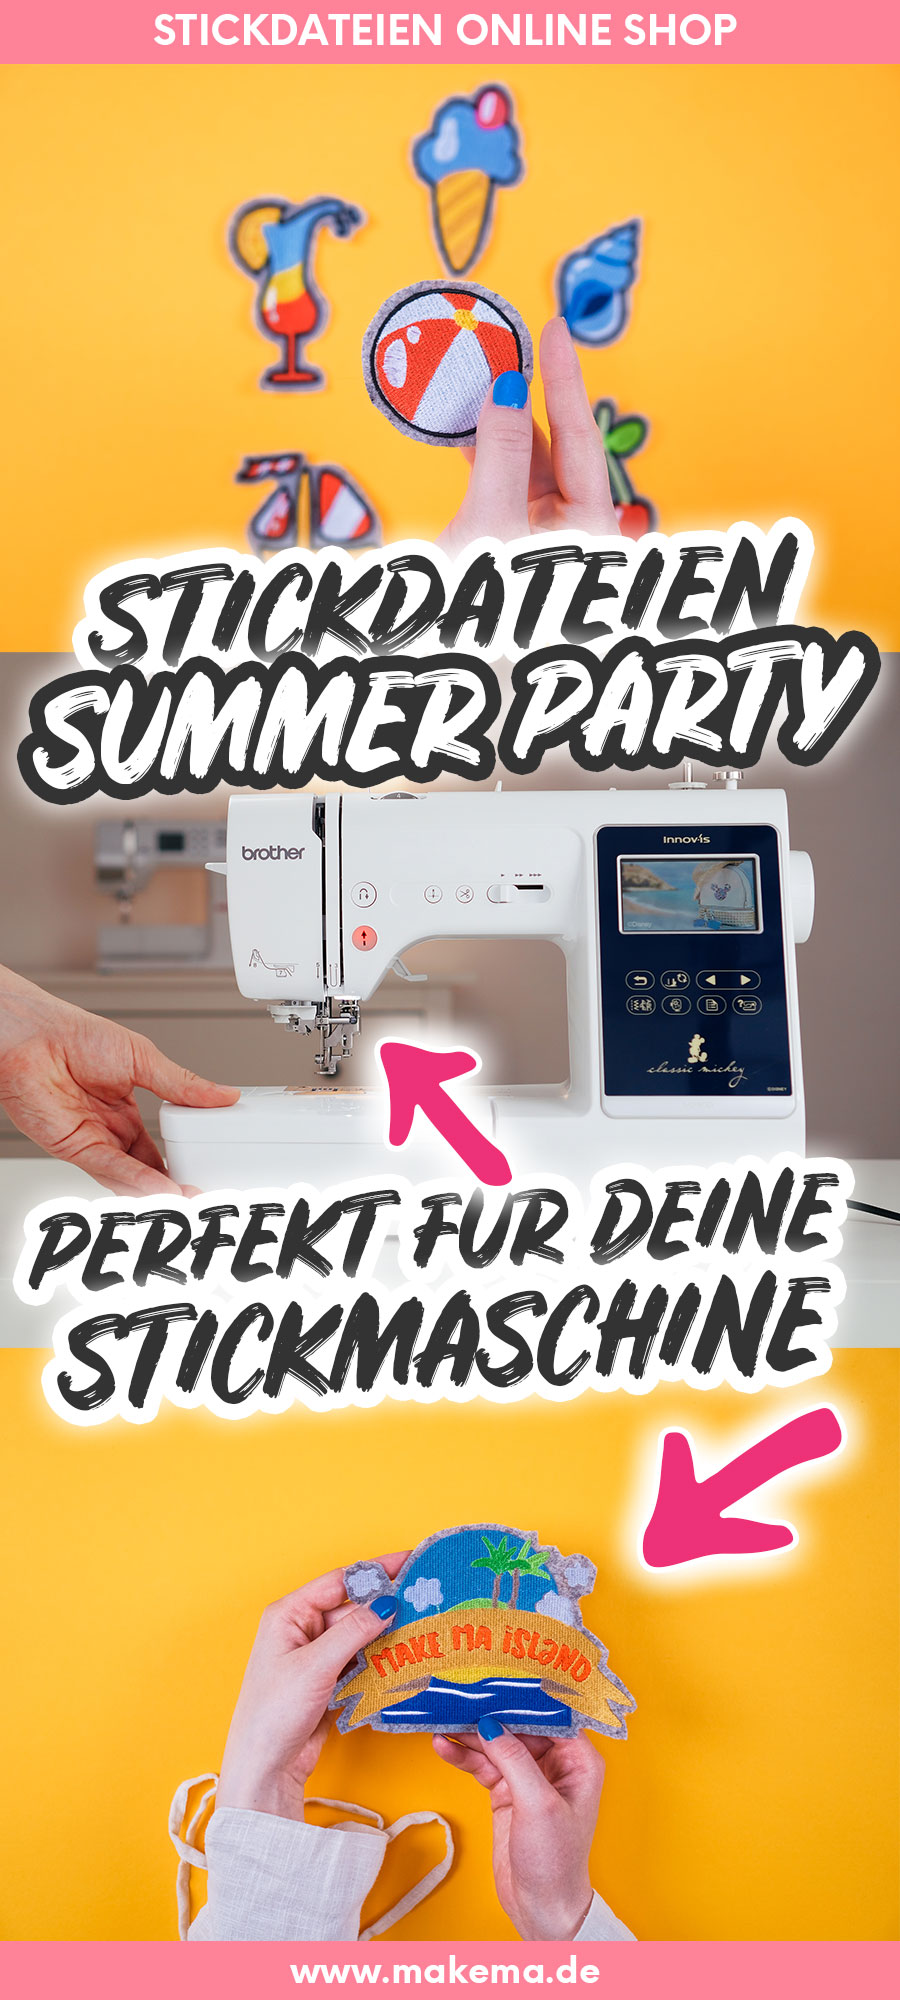 Stickdateien Sommer für Brother, Bernina, Singer, Pfaff, W6